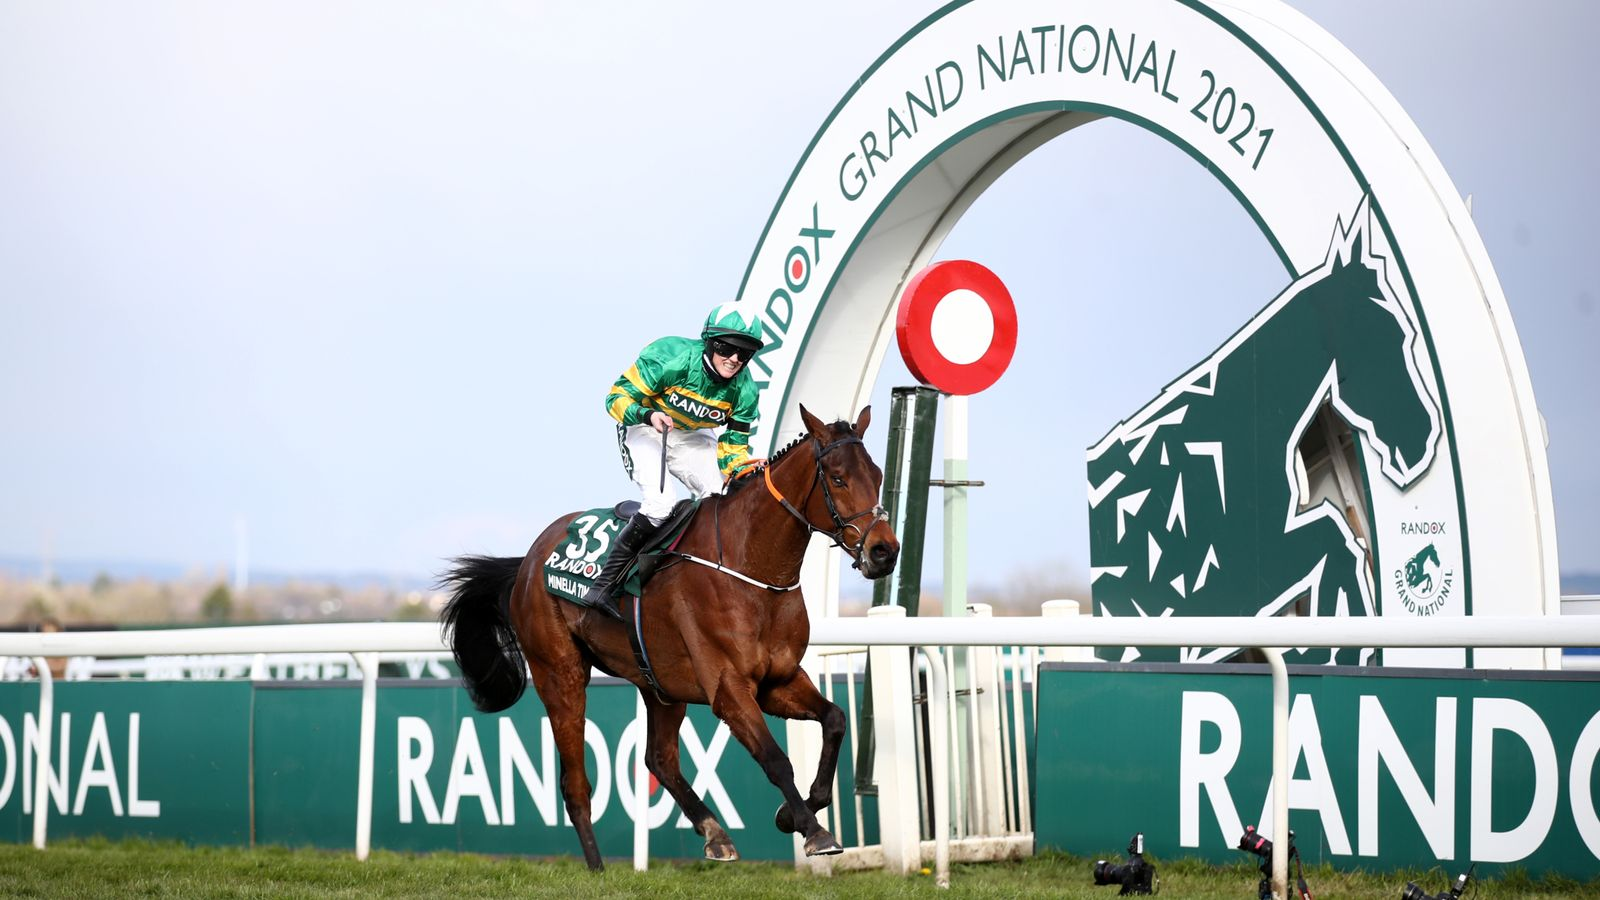 Rachael Blackmore makes Grand National history on Minella Times